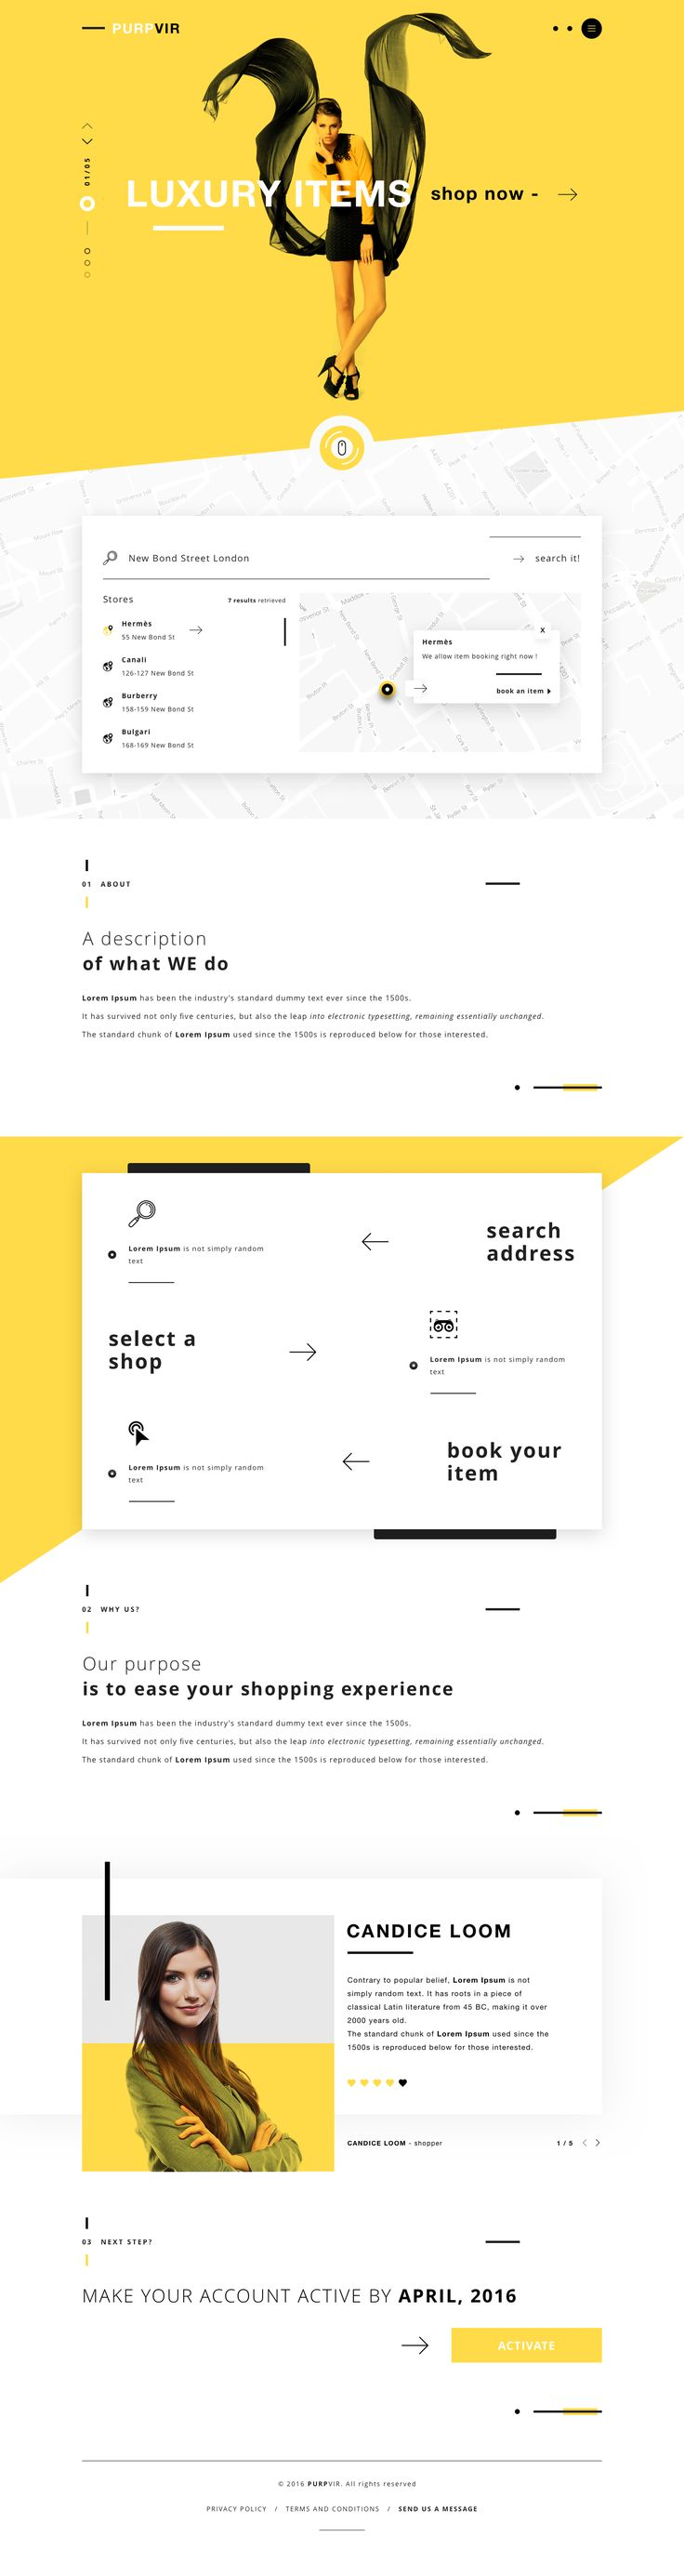 Dribbble - purpvir-landing-page-shopping-fashion-design-dribbble-full.png by Robert Berki